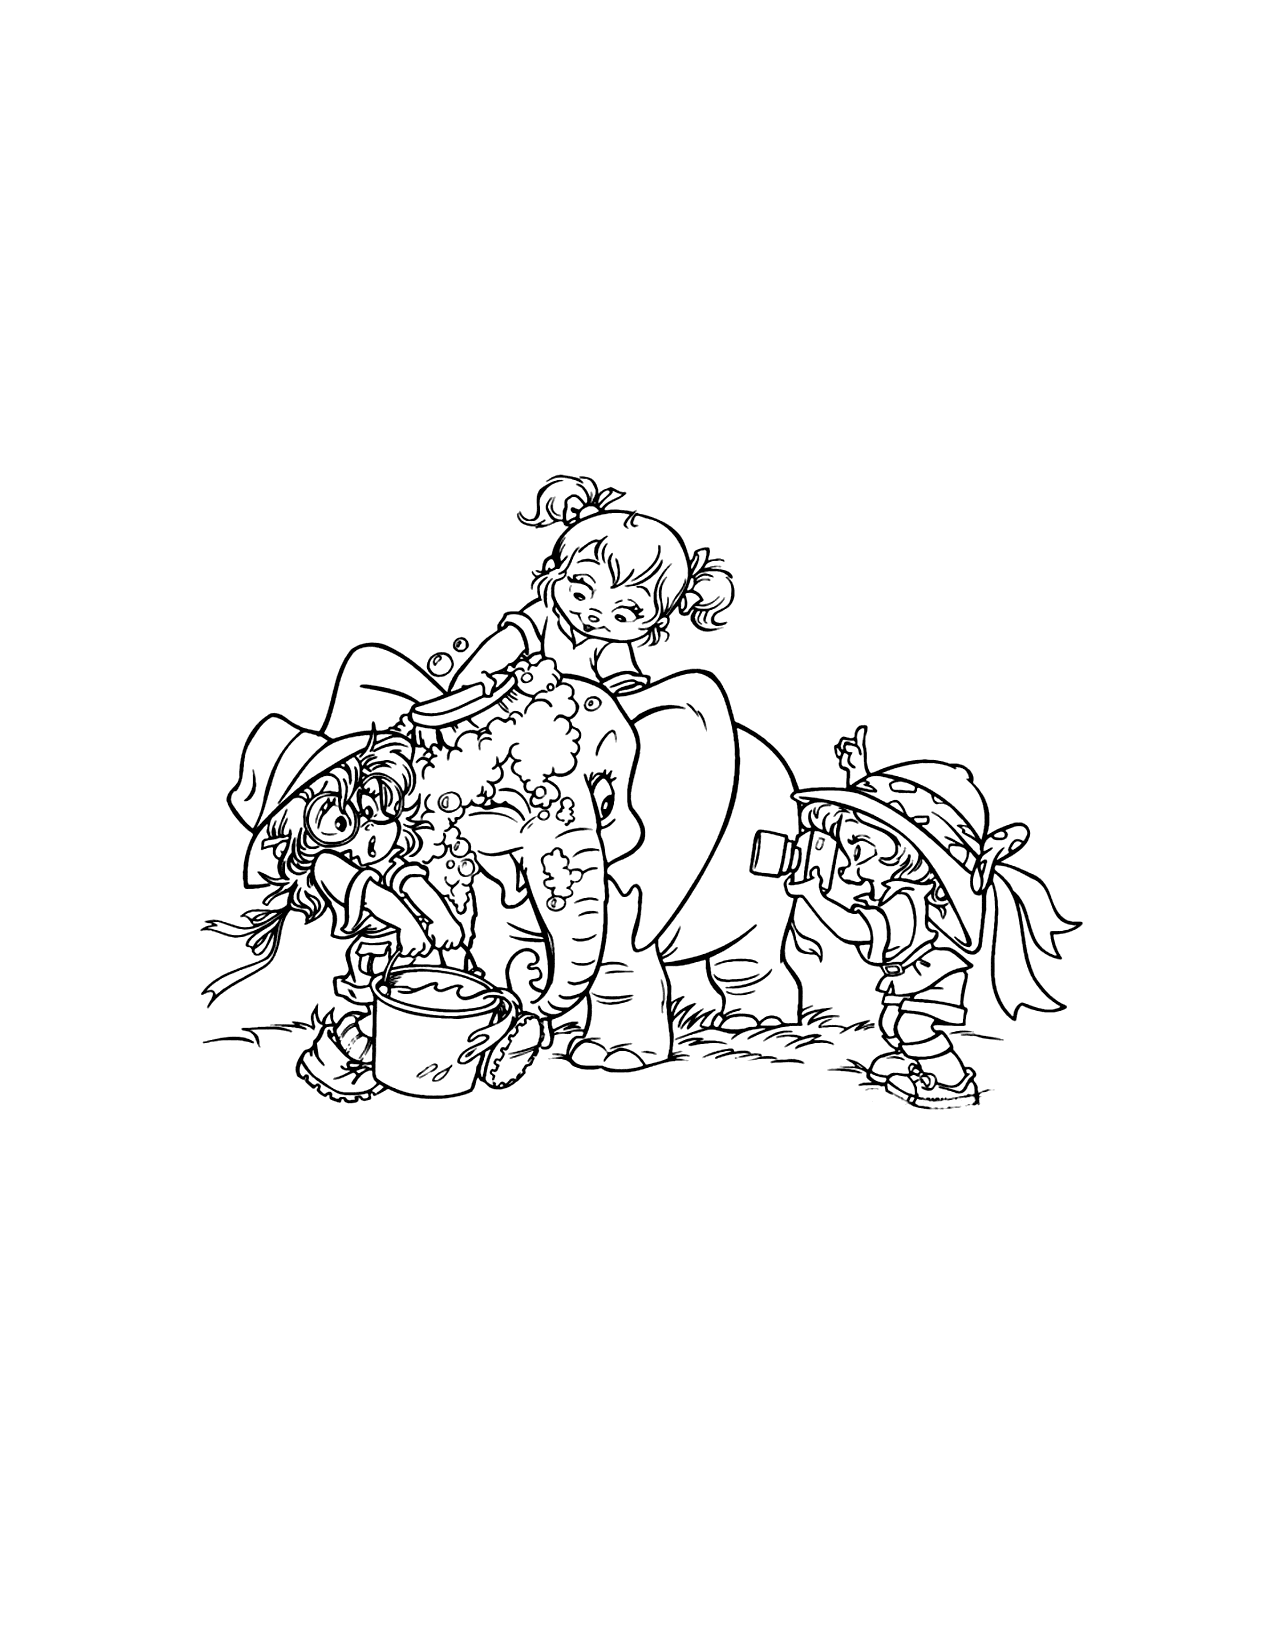 Chipettes Washing Elephant Coloring Page